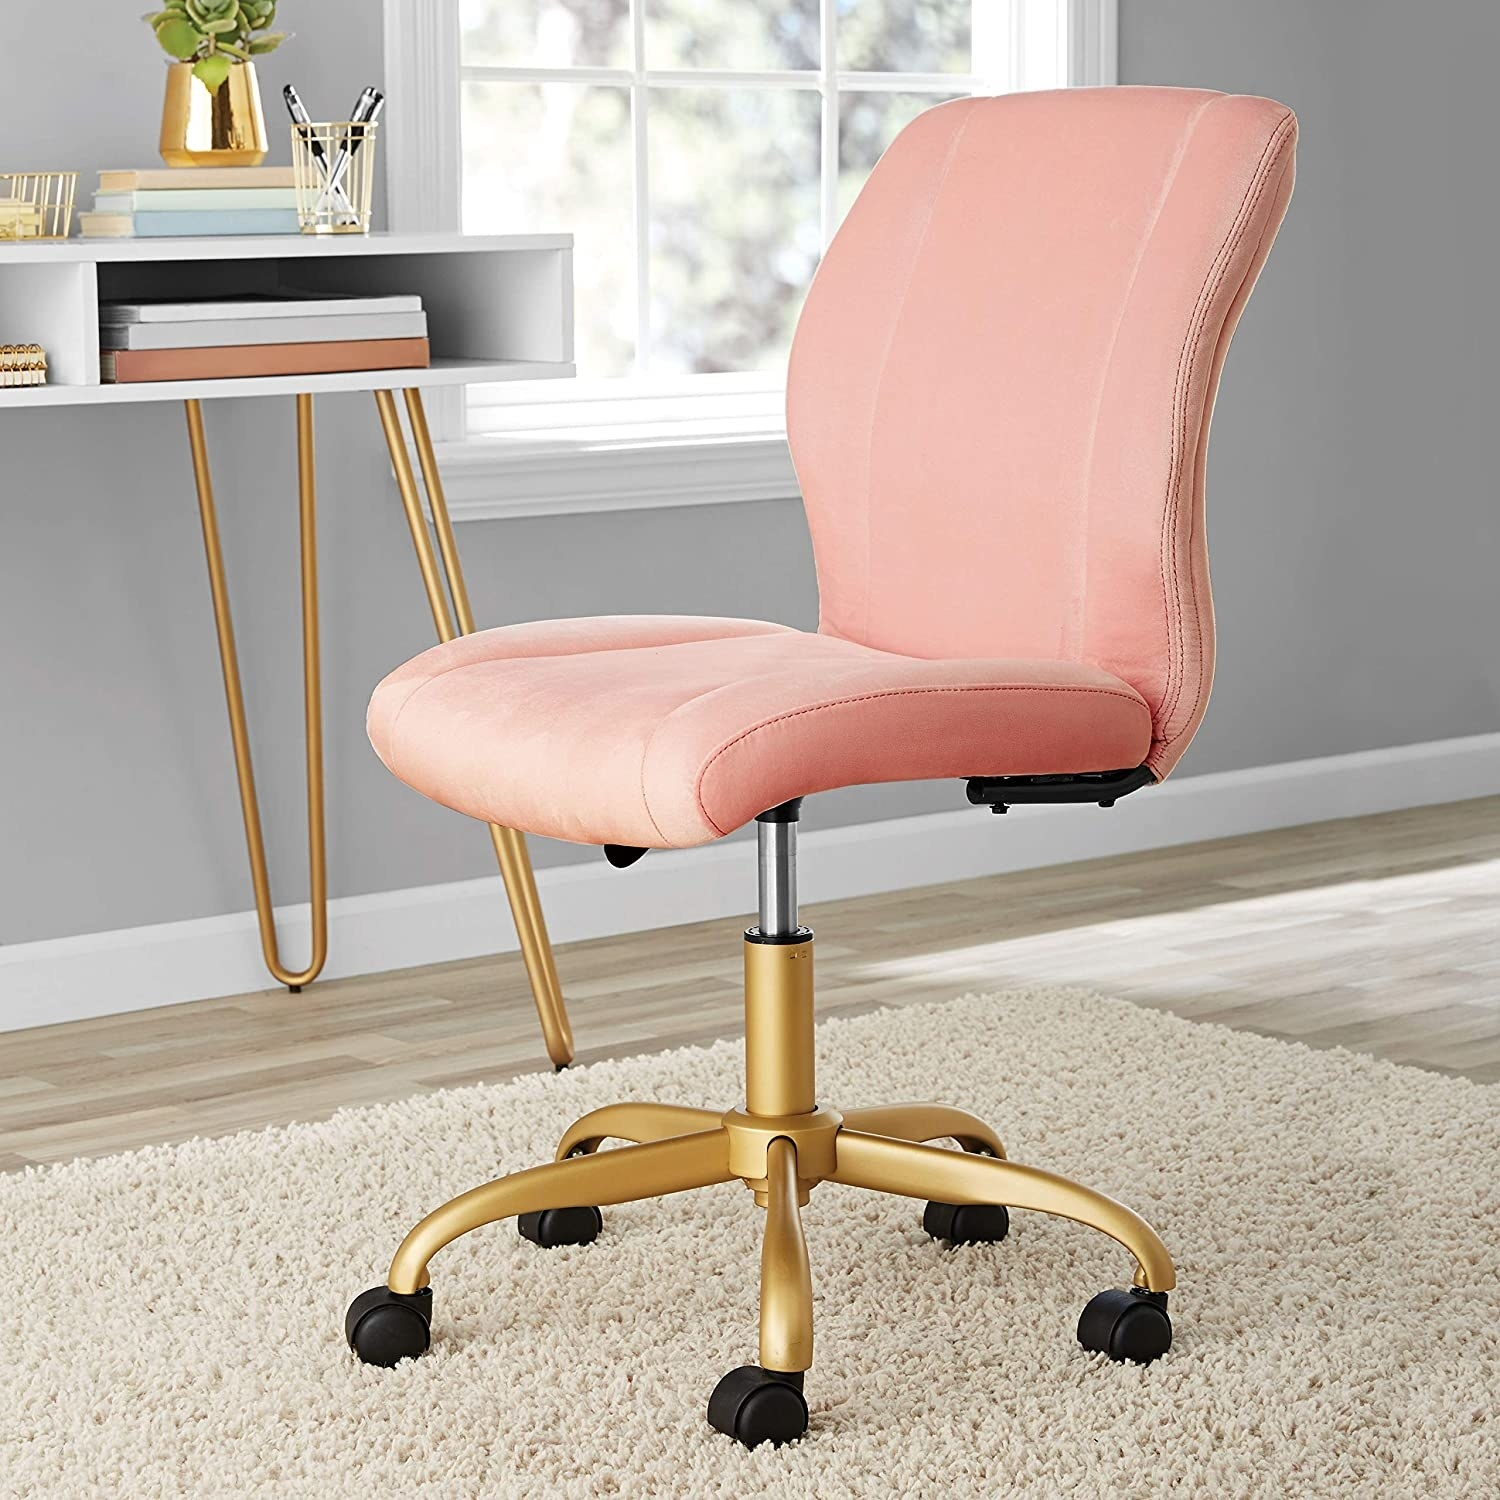 A pink armless desk chair with gold-toned rolling legs